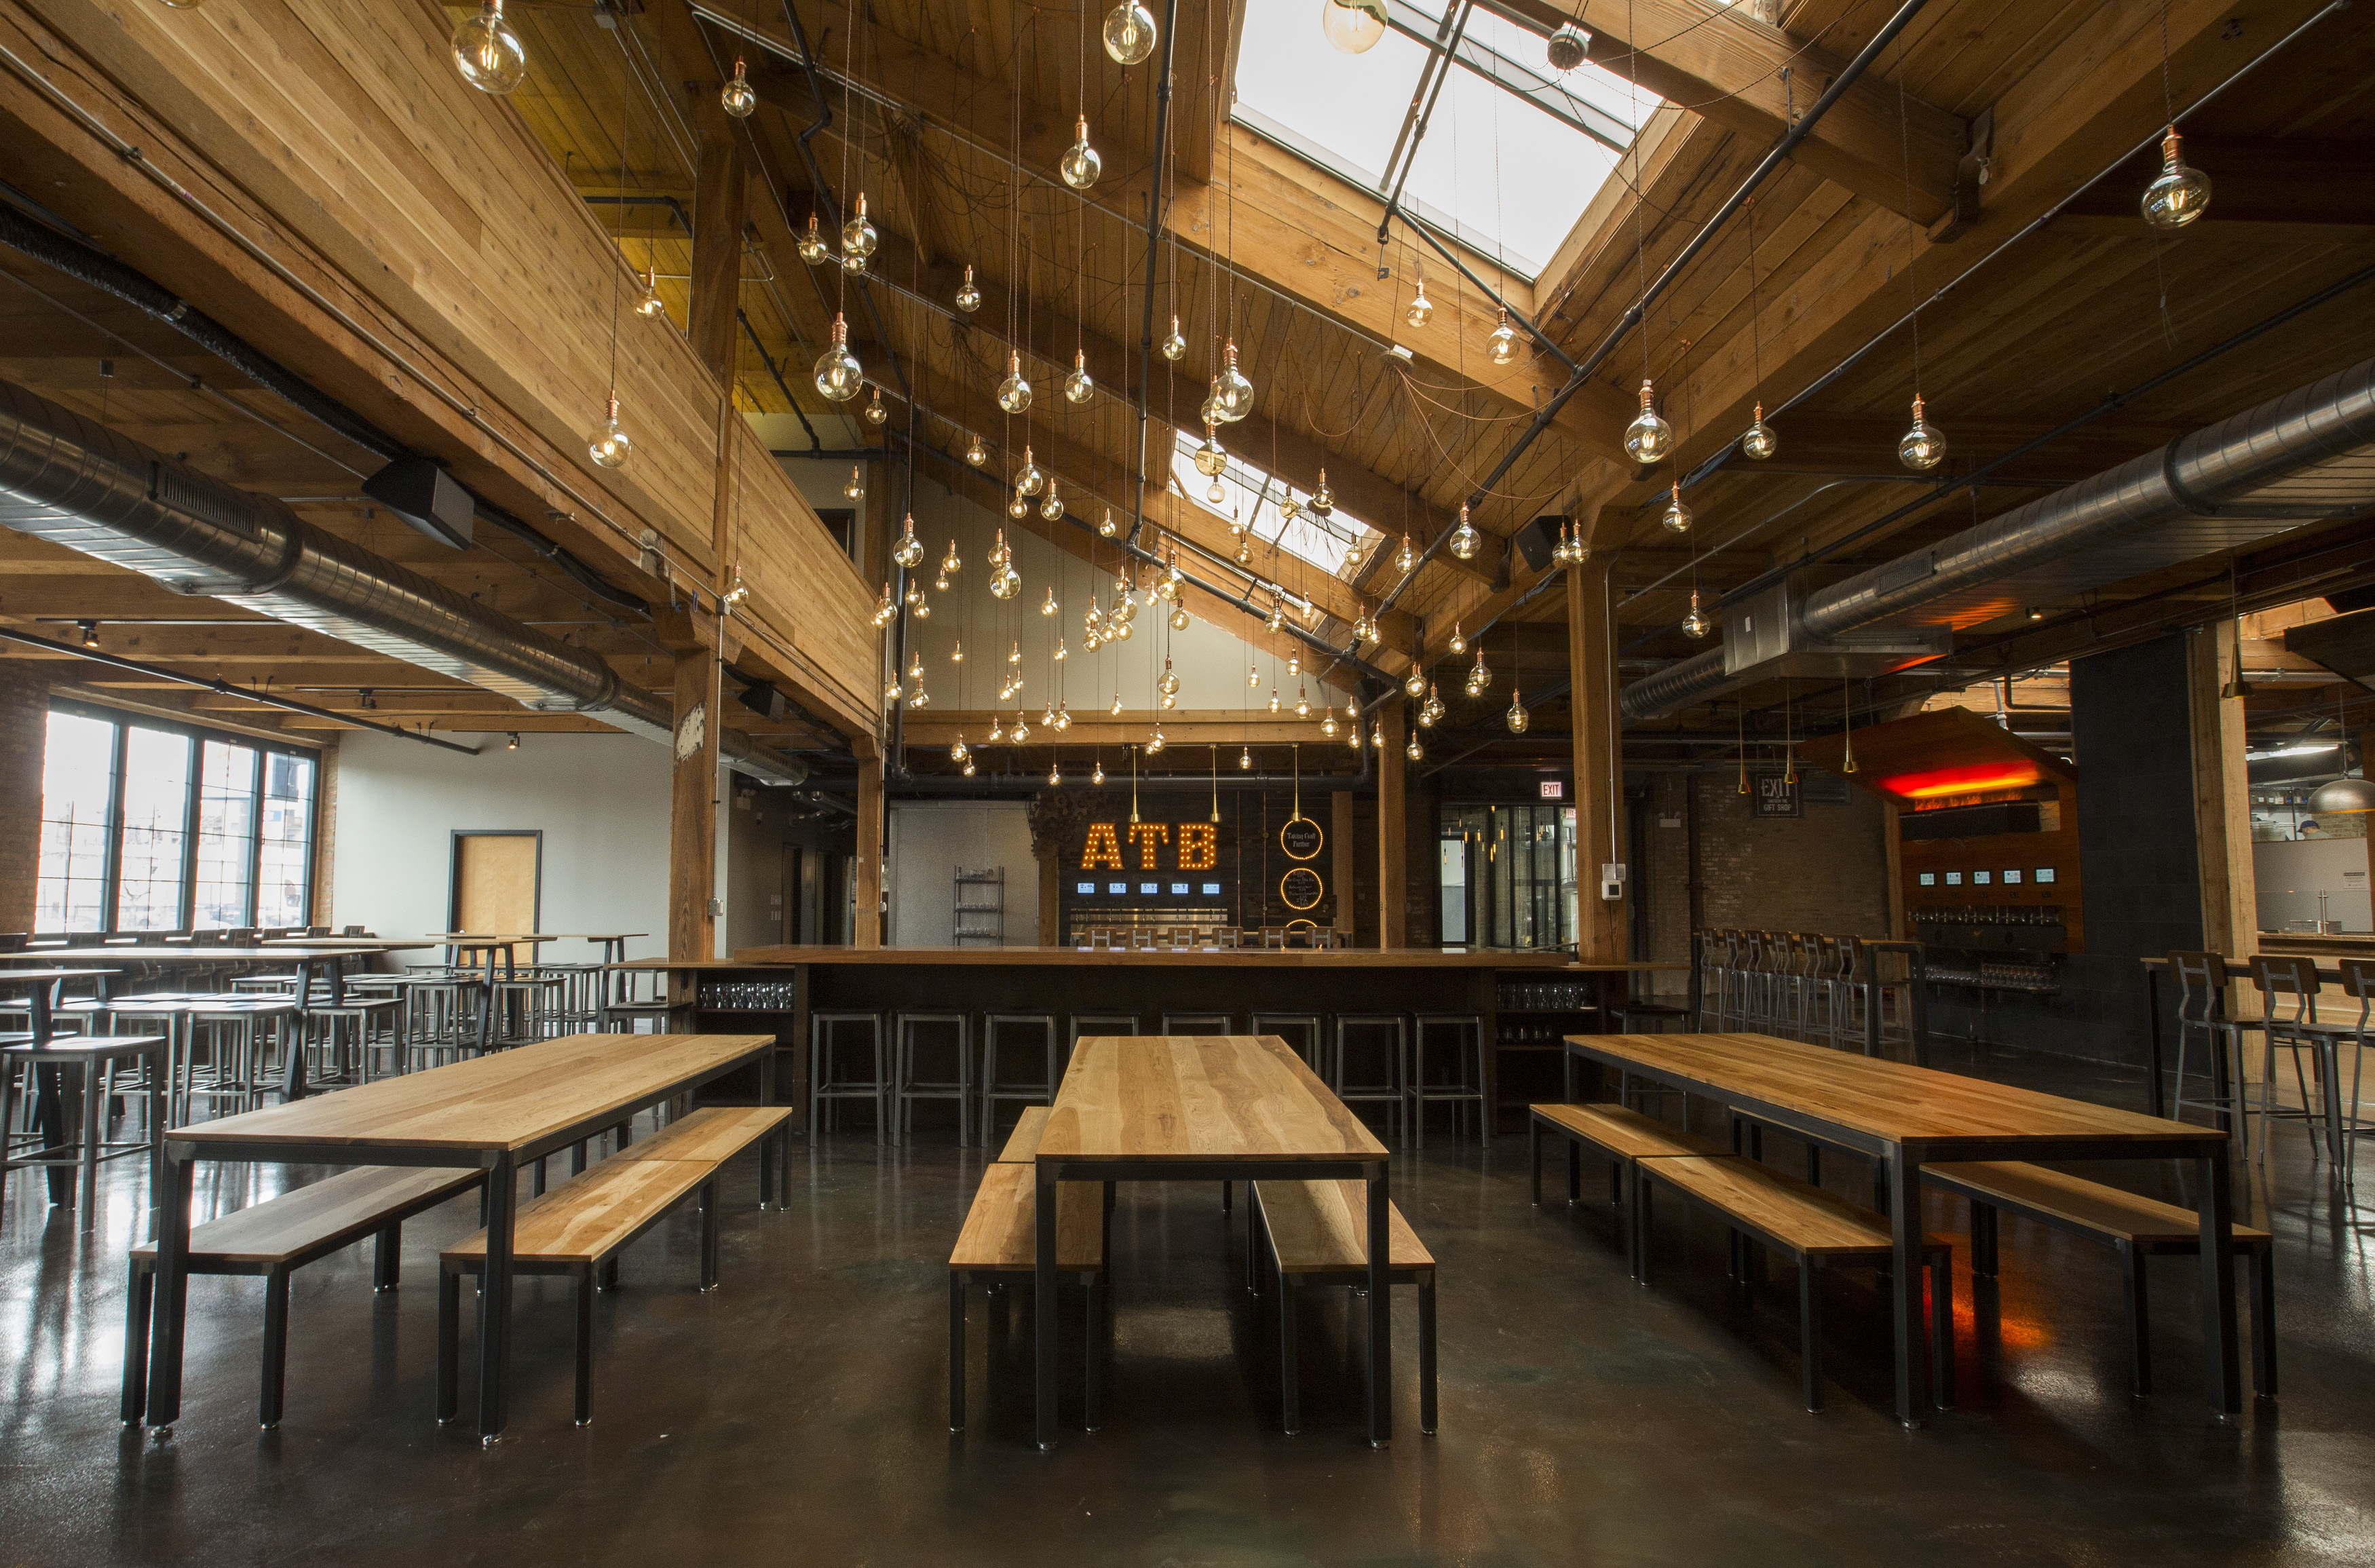 A beer hall with an industrial look an string lights.